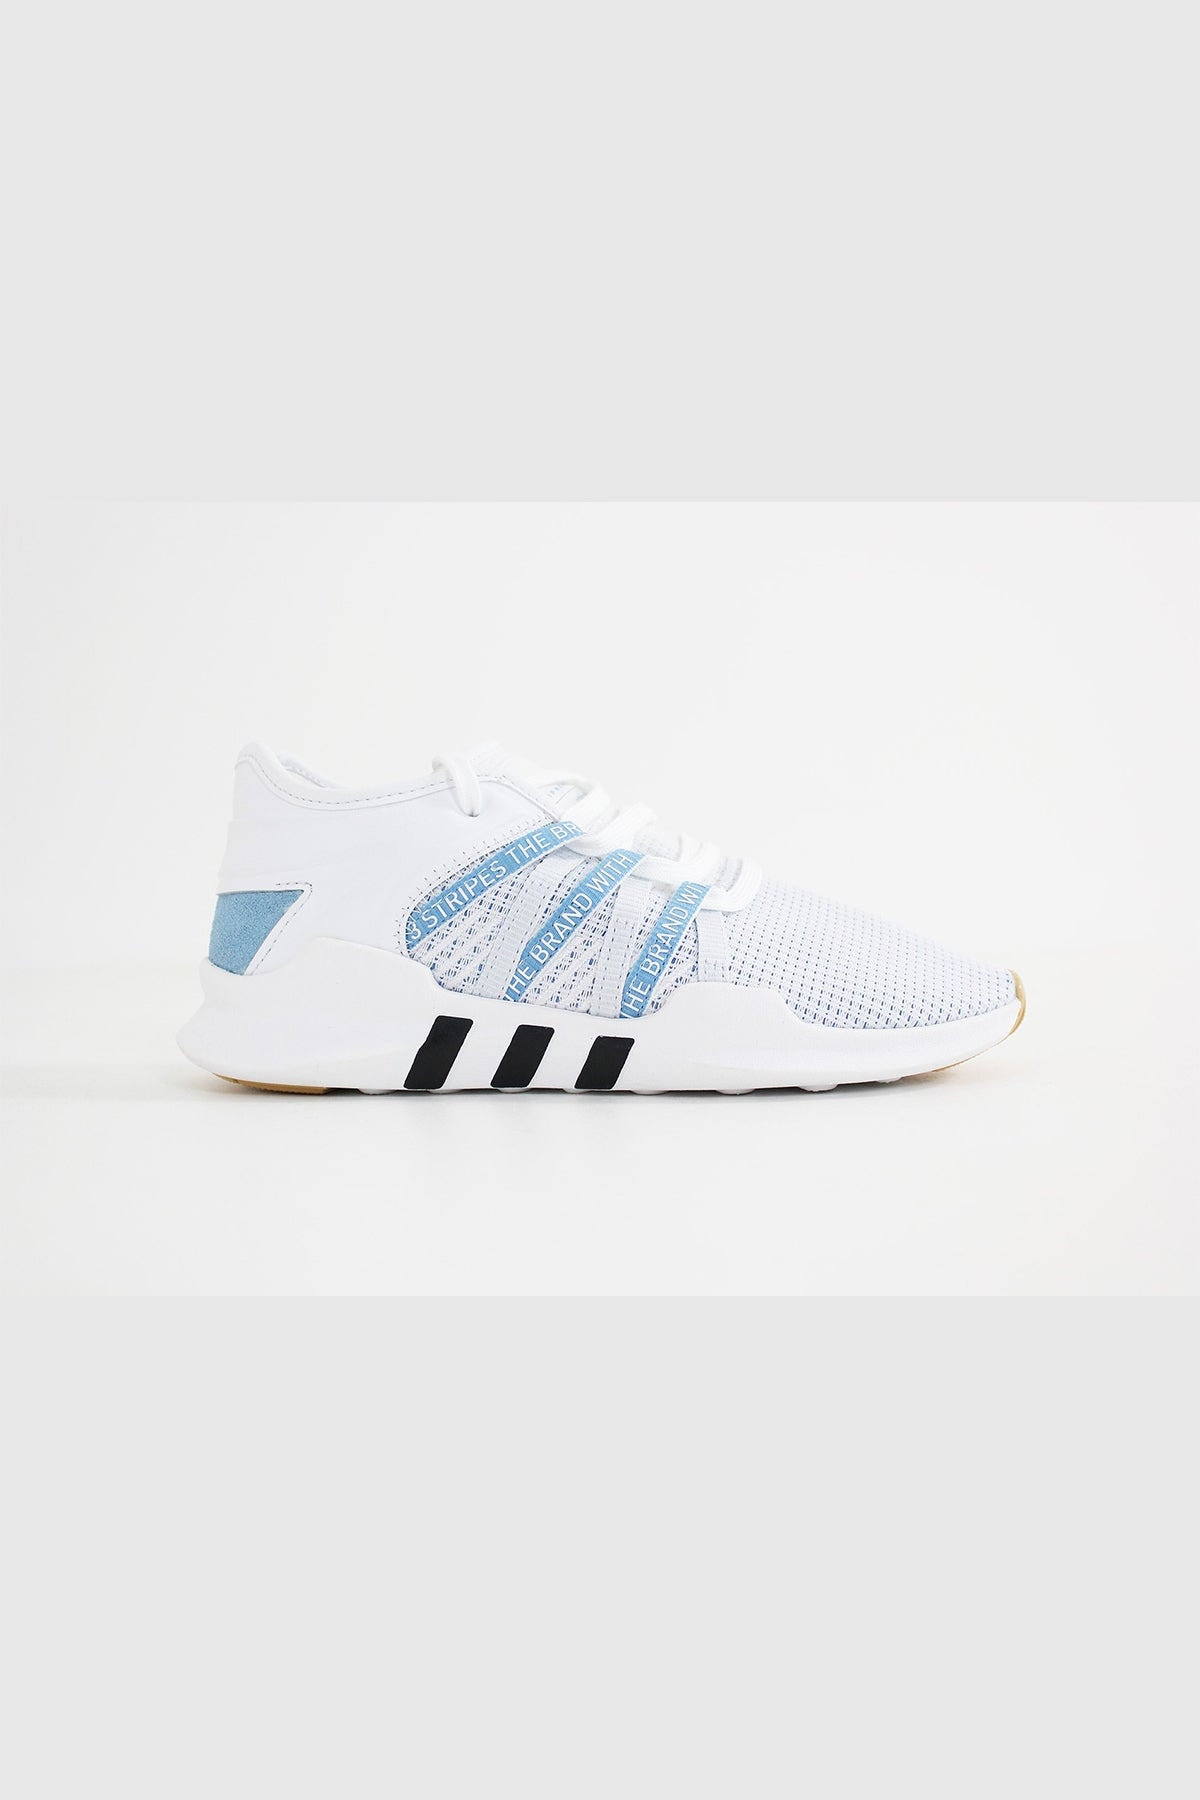 Adidas - EQT Racing ADV Women (FTW White/ Ash Blue/ Core Black) CQ2155